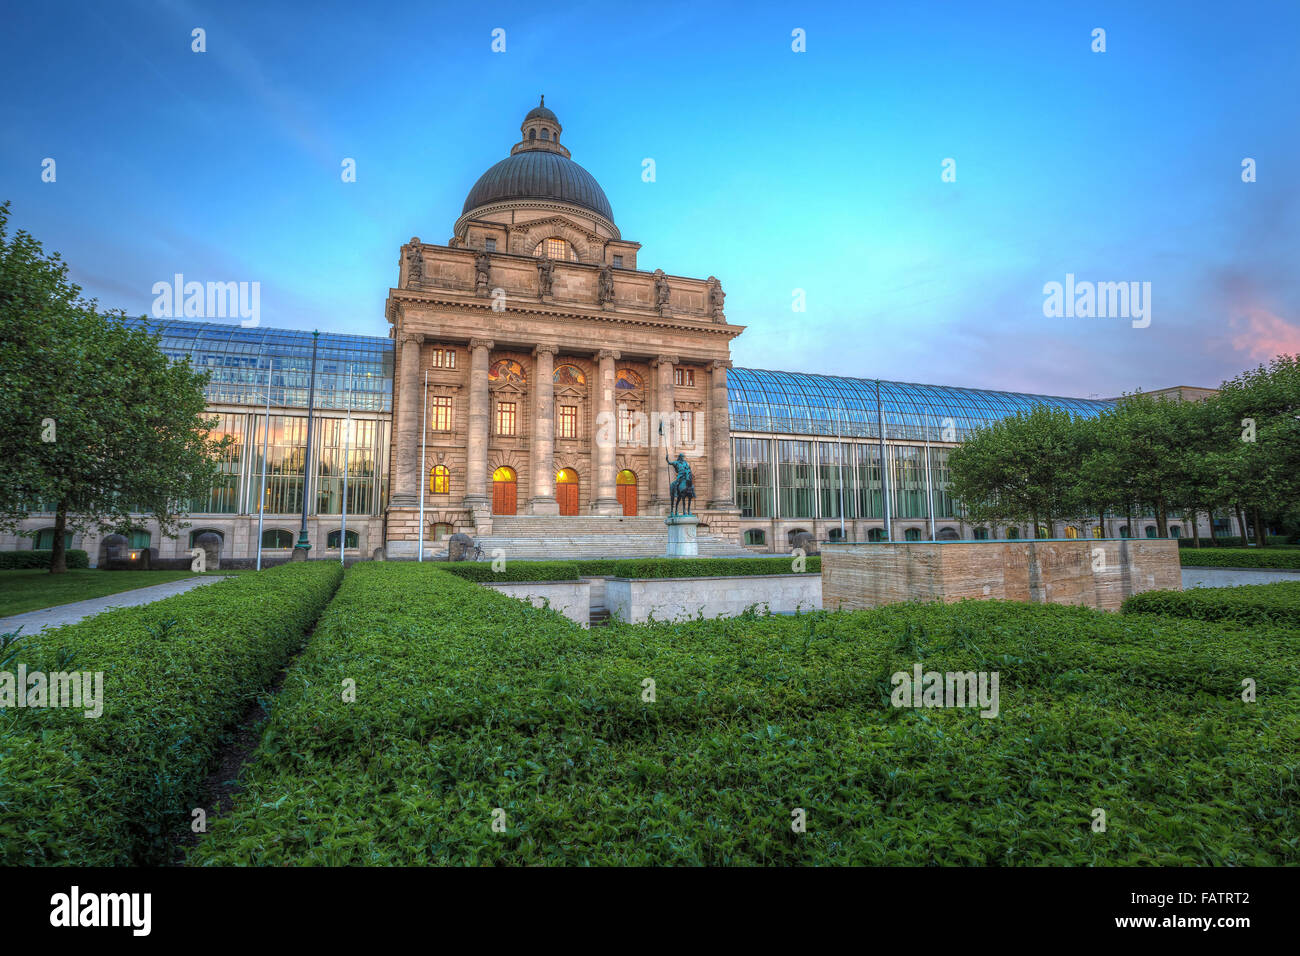 State building of Munich city, Germany - Stock Image